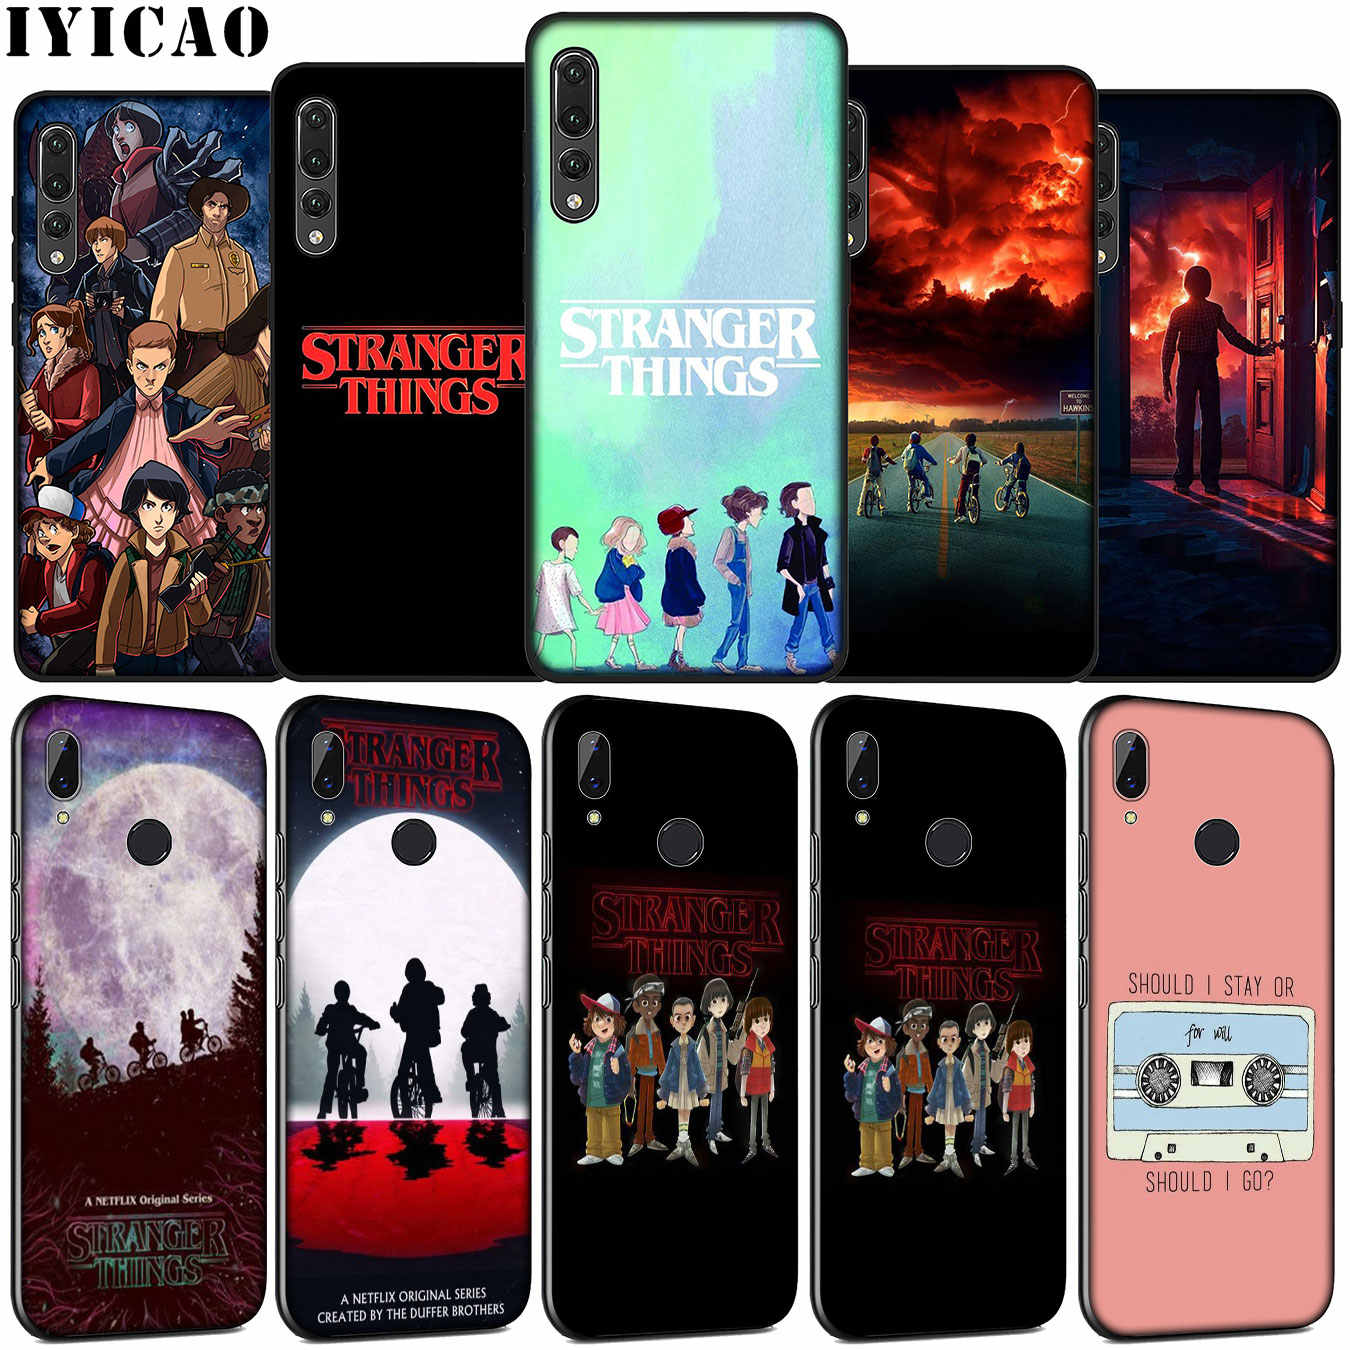 IYICAO Stranger Things TV Soft Silicone Case for Huawei P30 P20 Pro P10 P9 Lite Mini 2017 2016 Black Cover P Smart Z 2019